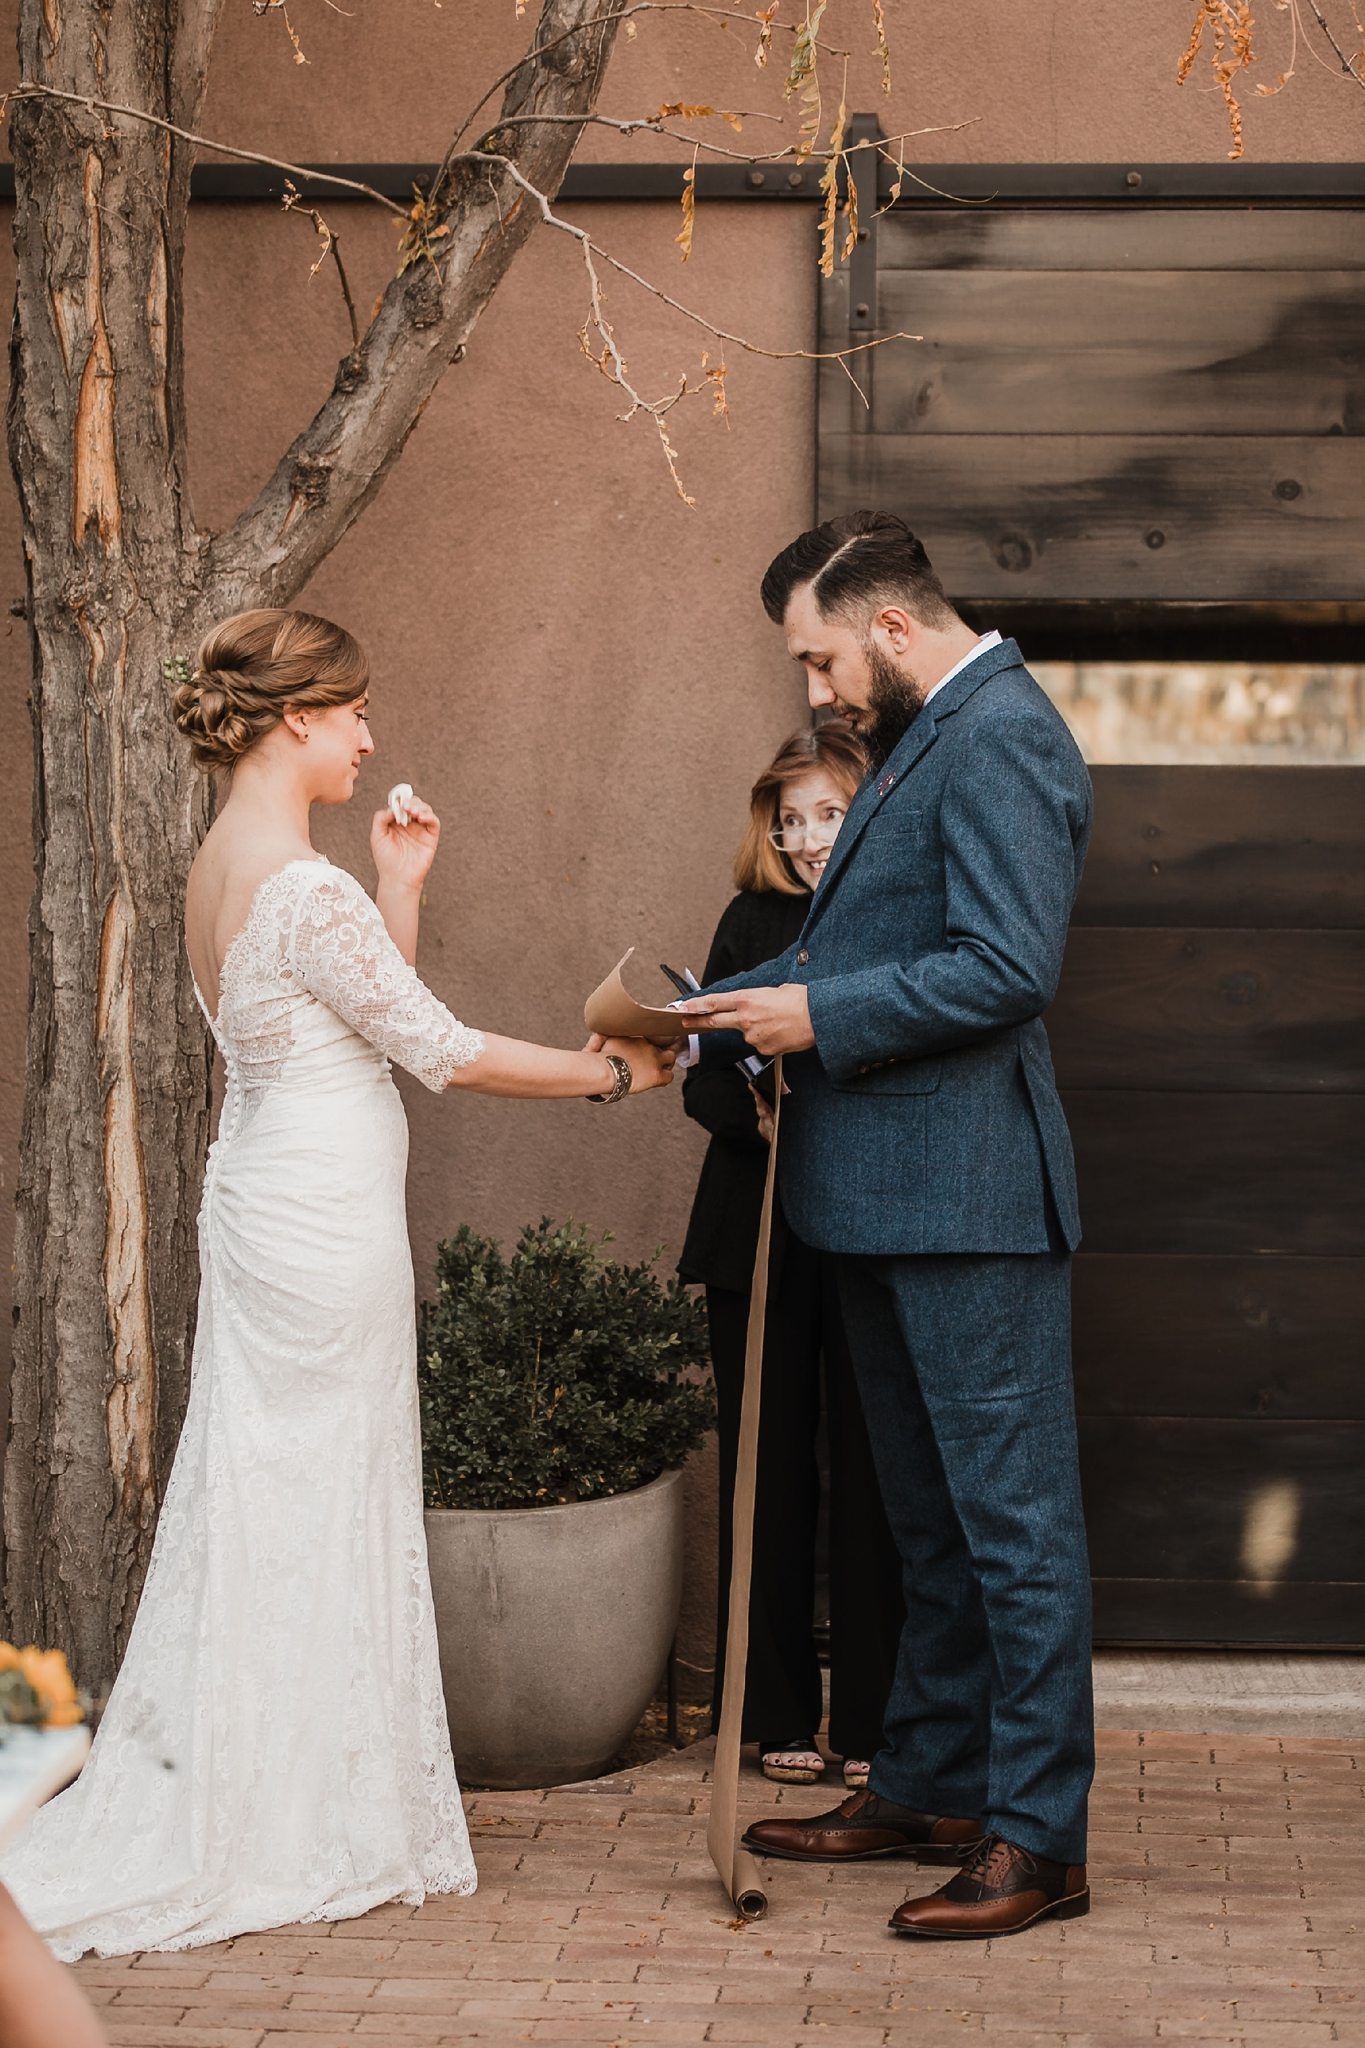 Alicia+lucia+photography+-+albuquerque+wedding+photographer+-+santa+fe+wedding+photography+-+new+mexico+wedding+photographer+-+new+mexico+wedding+-+wedding+vows+-+writing+your+own+vows+-+wedding+inspo_0023.jpg